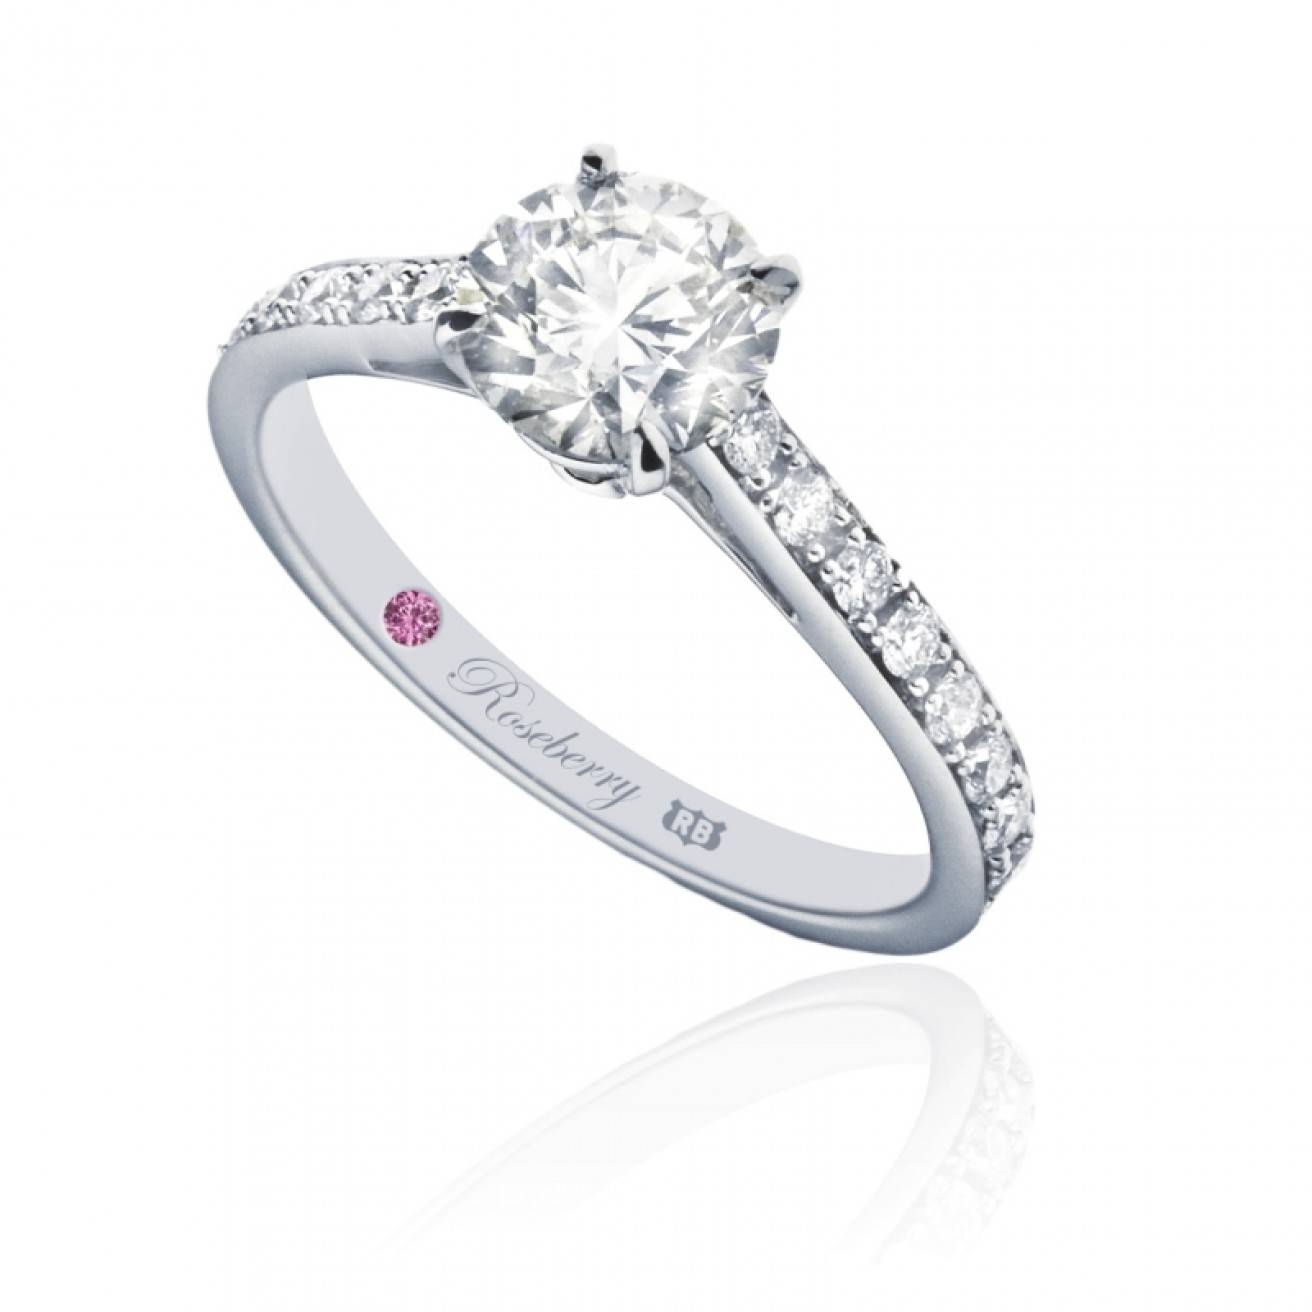 Exquisite Engagement Rings For Your Loved One | Fraser Hart In Engagement Rings For Under  (View 8 of 15)